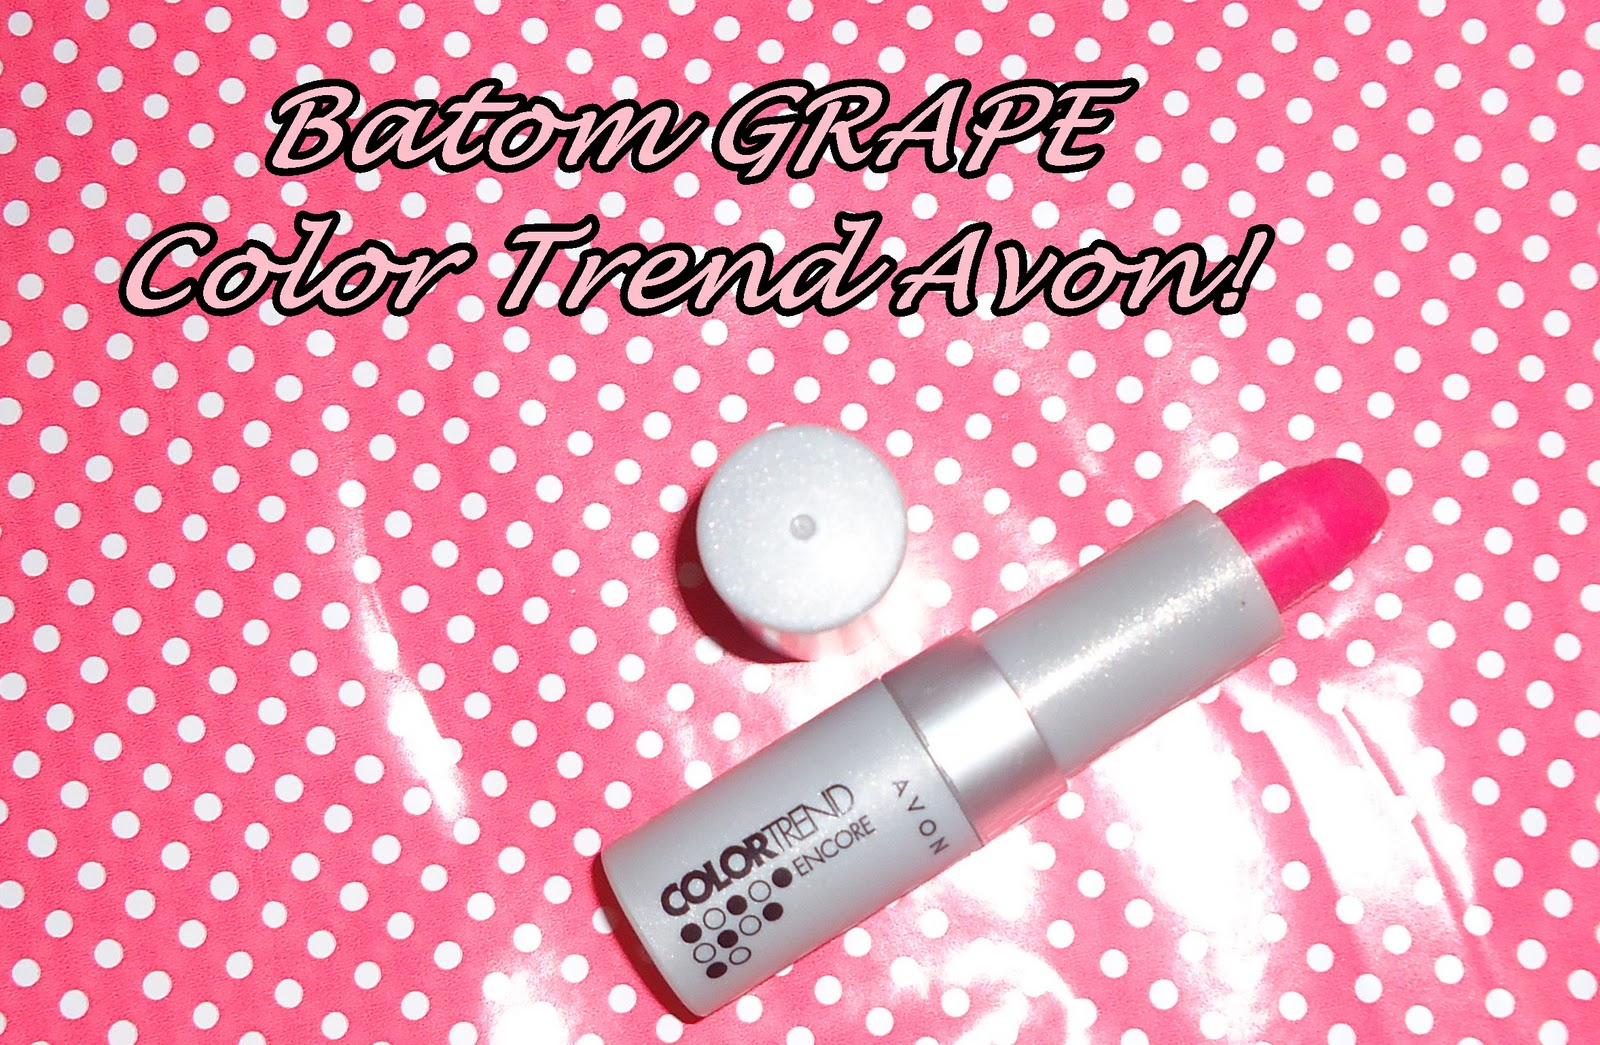 batom grape avon